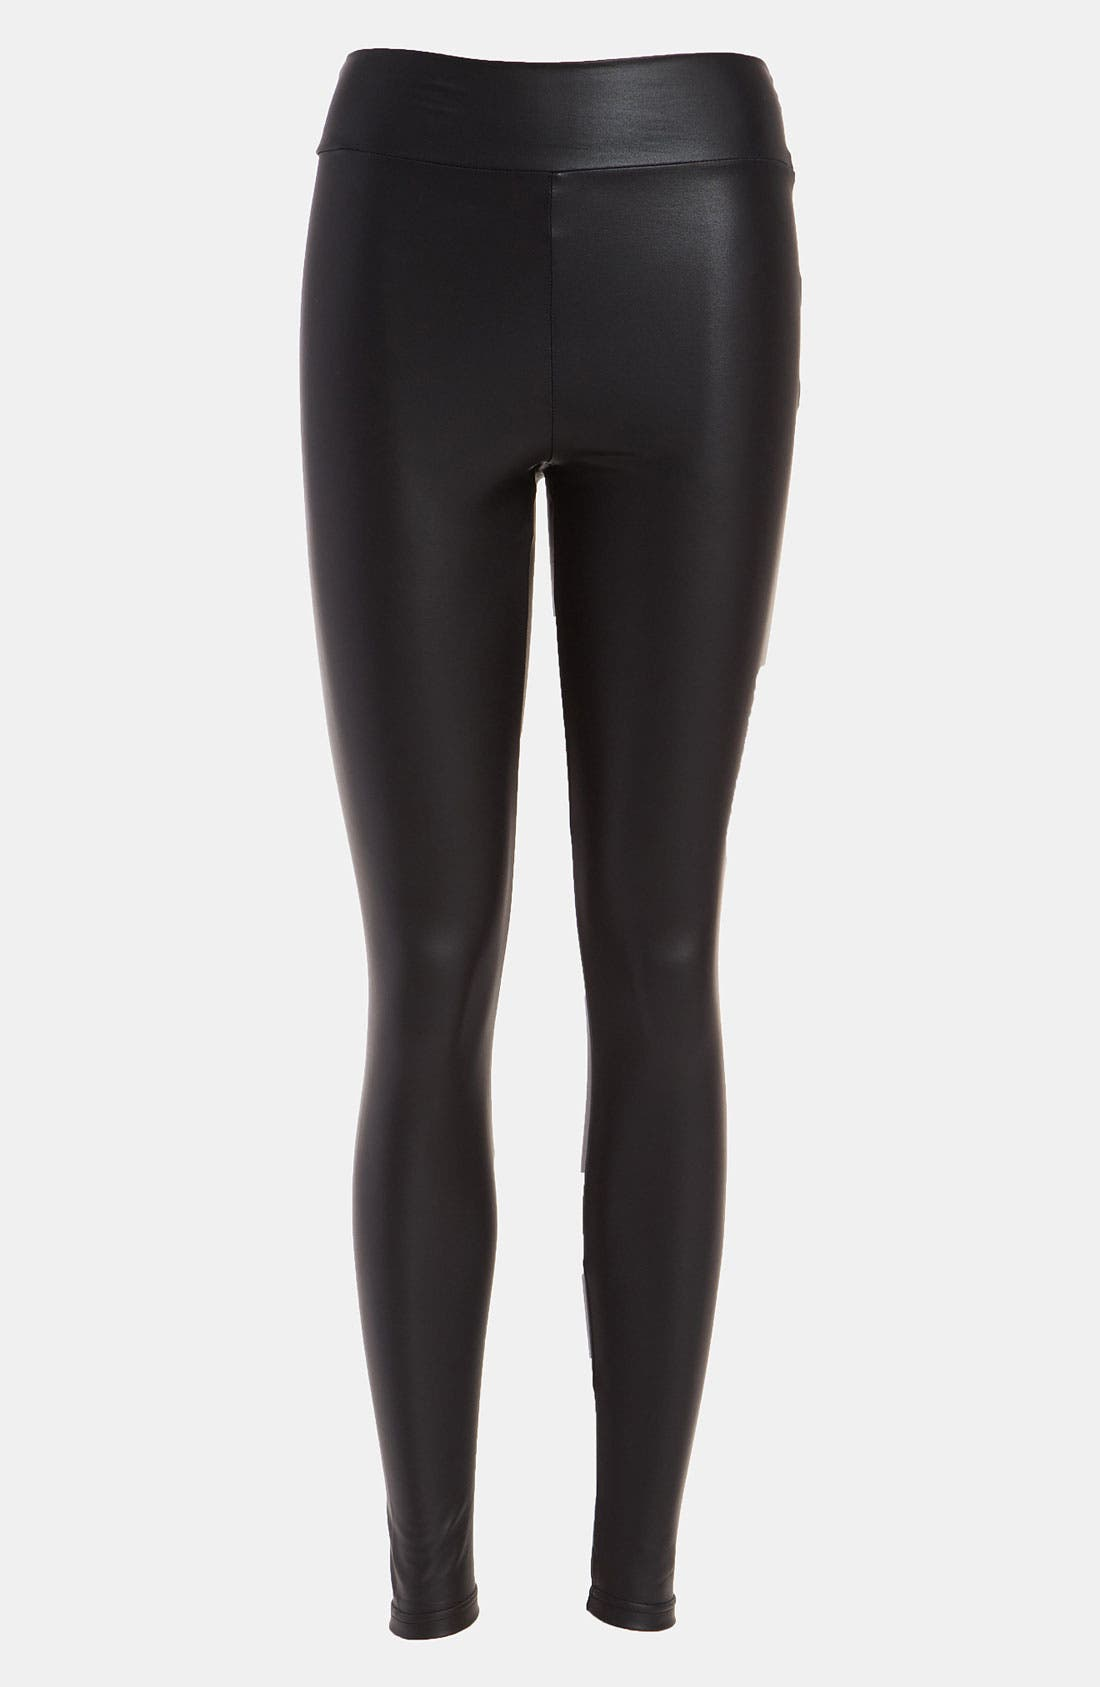 Main Image - MINKPINK 'Greased Lightning' High Waist Leggings